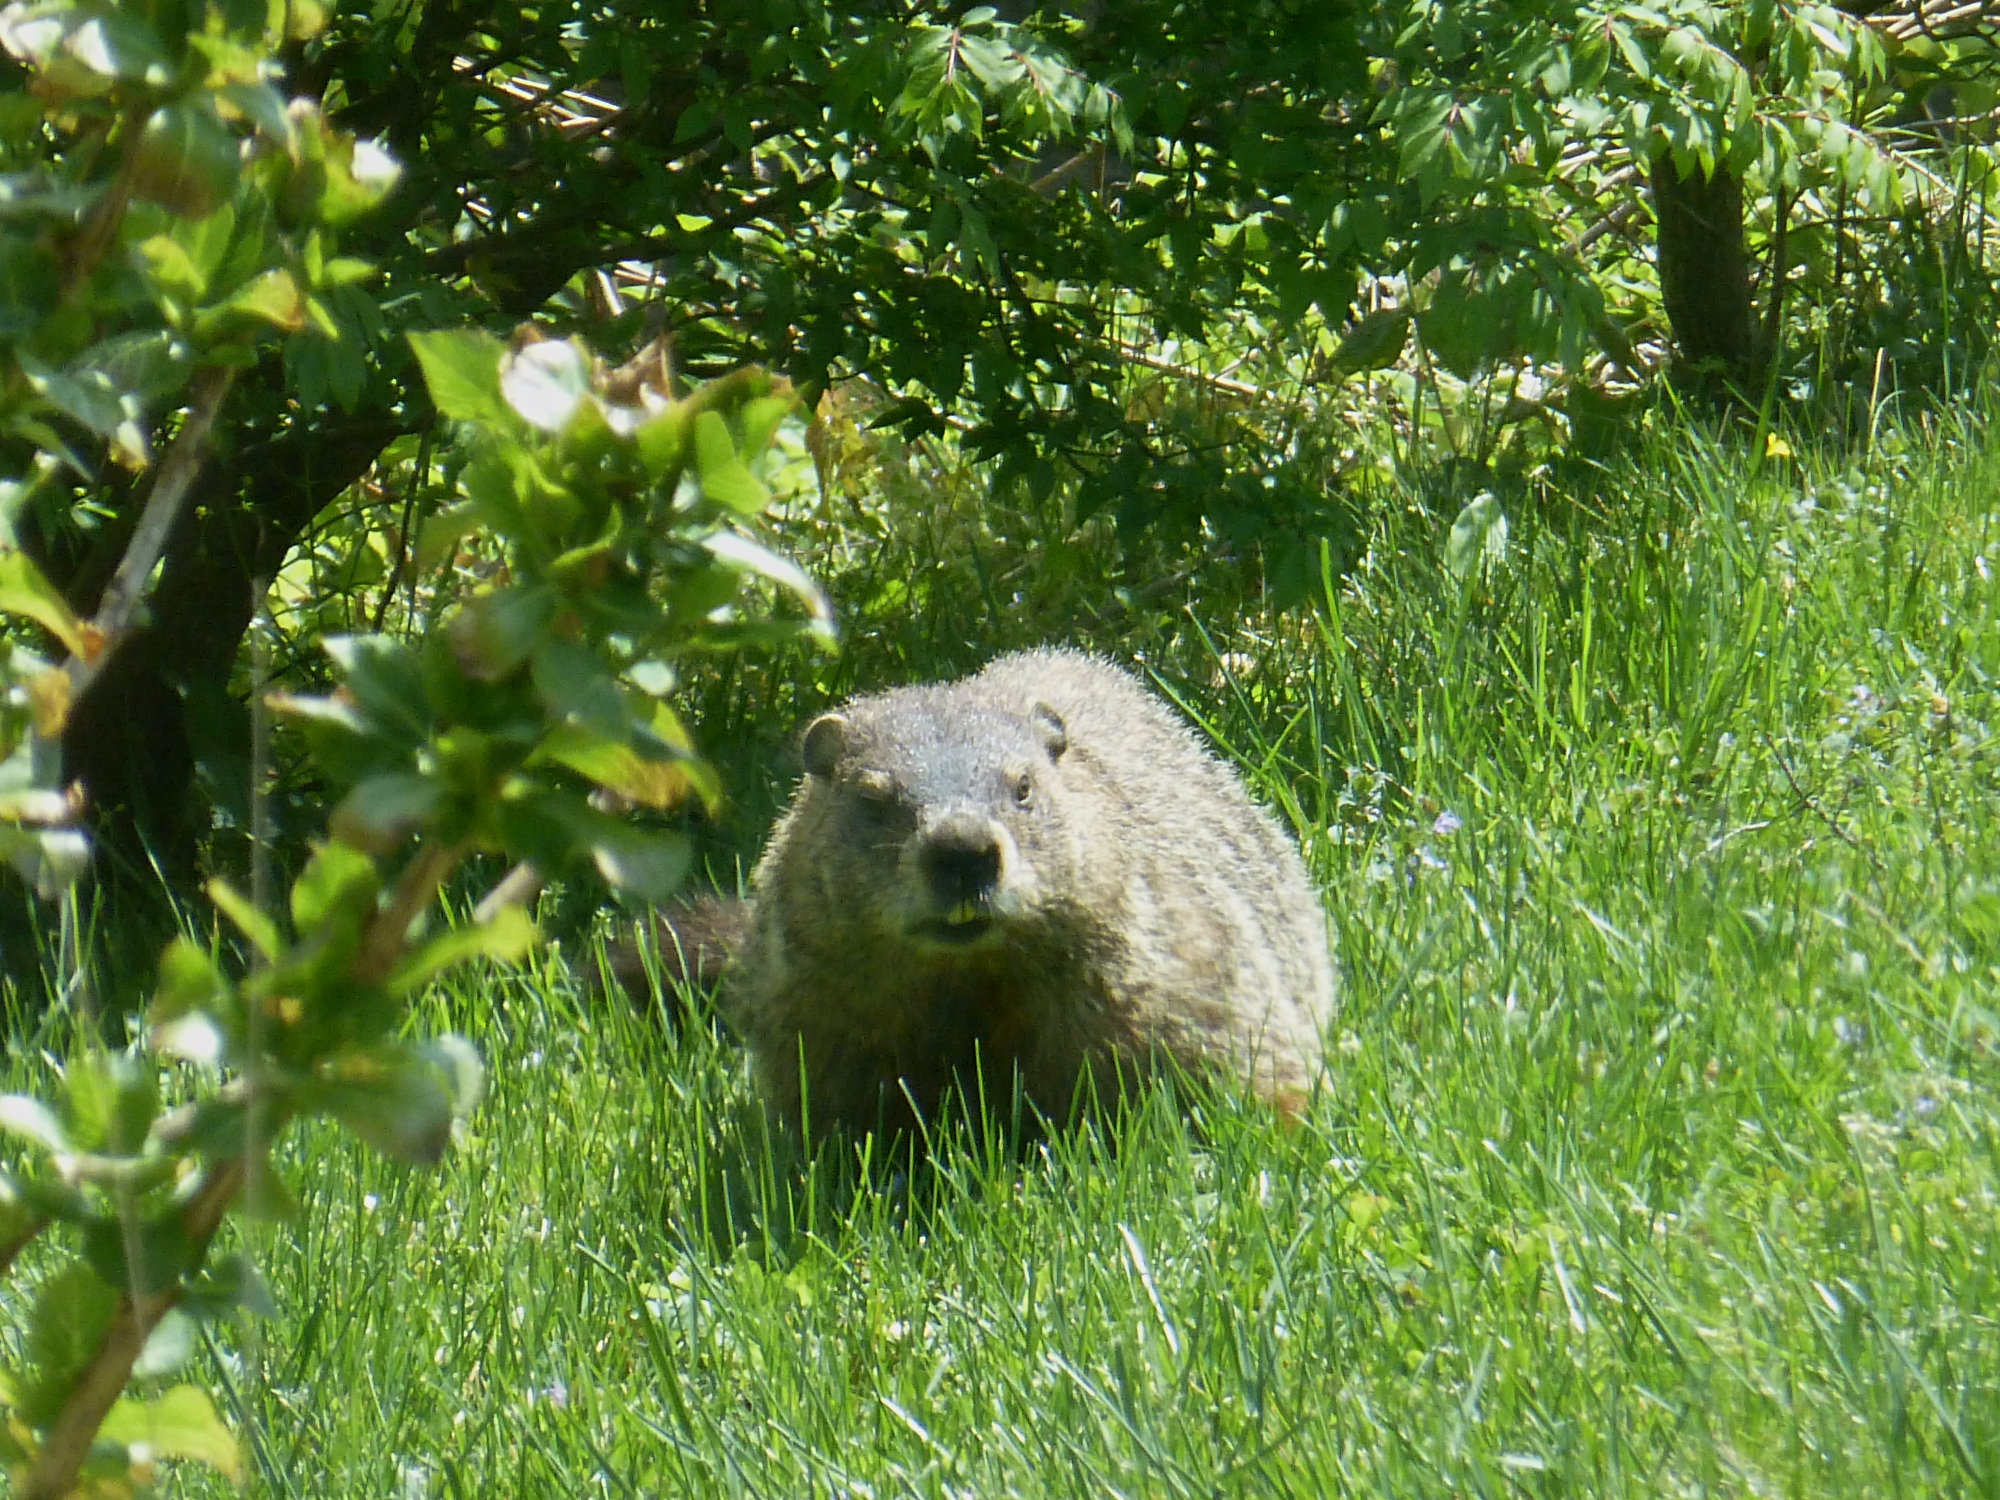 Groundhog in the grass staring at the photographer